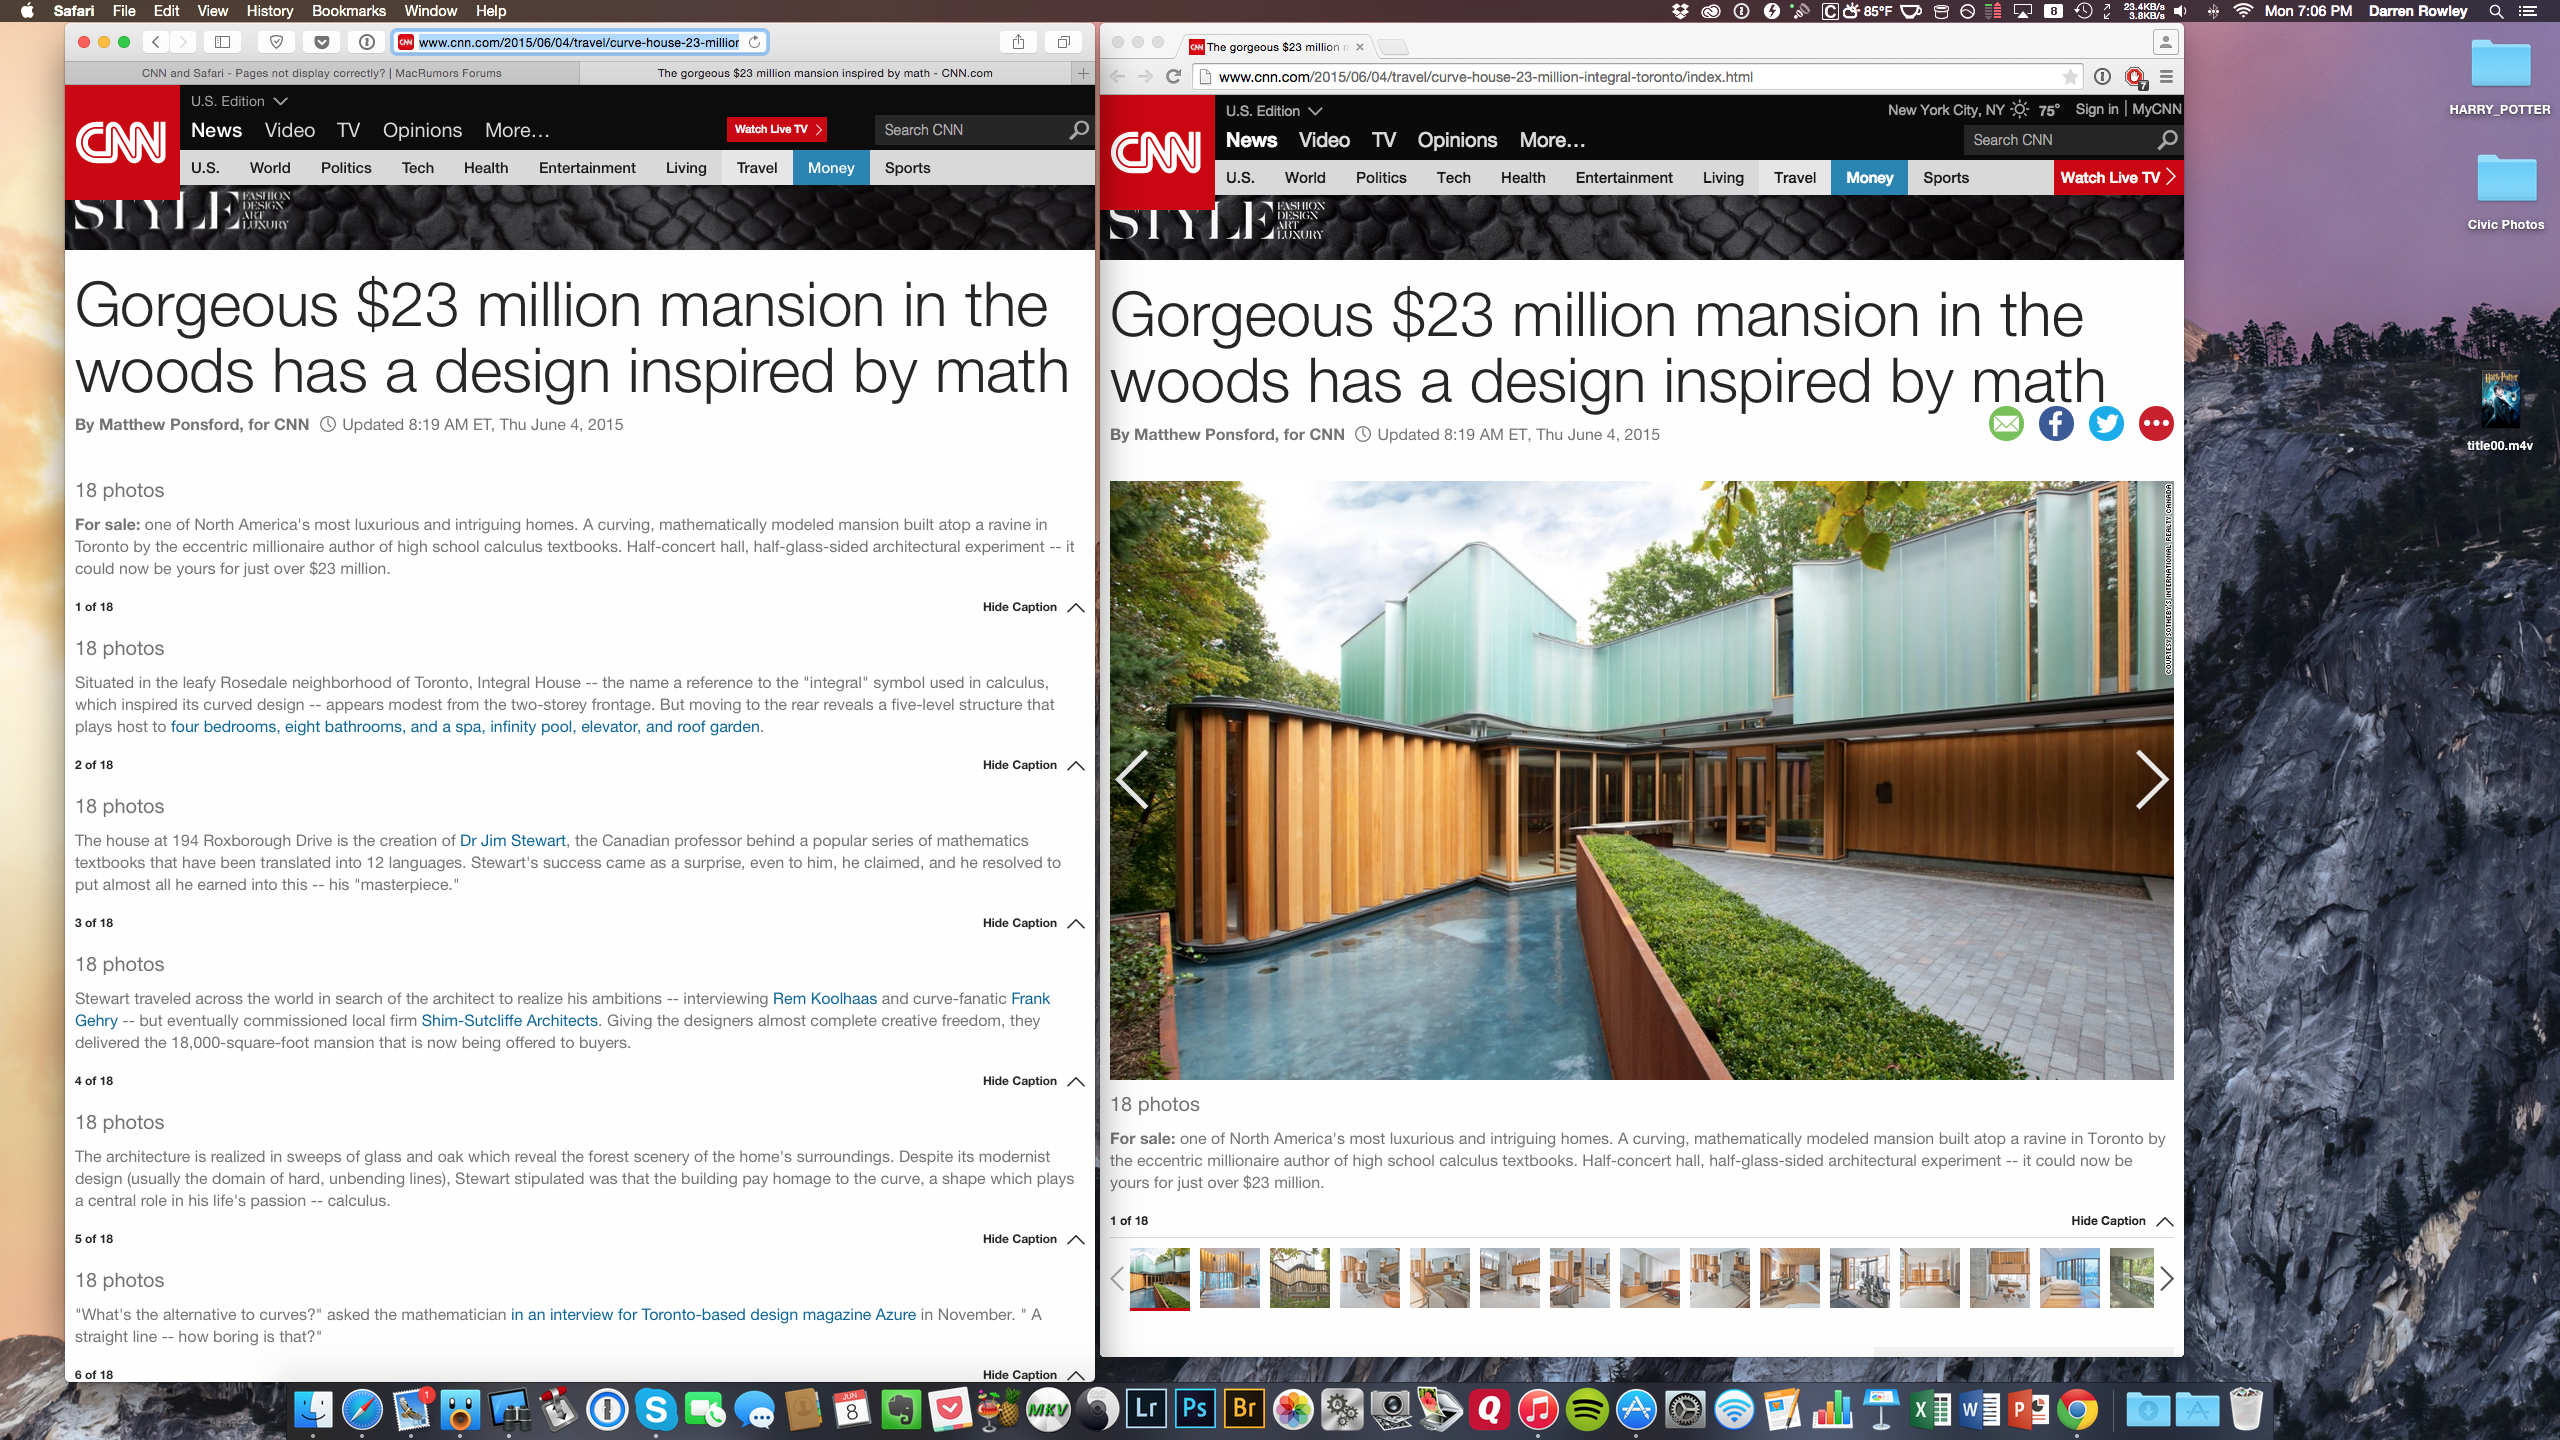 The gorgeous $23 million mansion inspired by math - CNN.com 2015-06-08 19-06-31.jpg